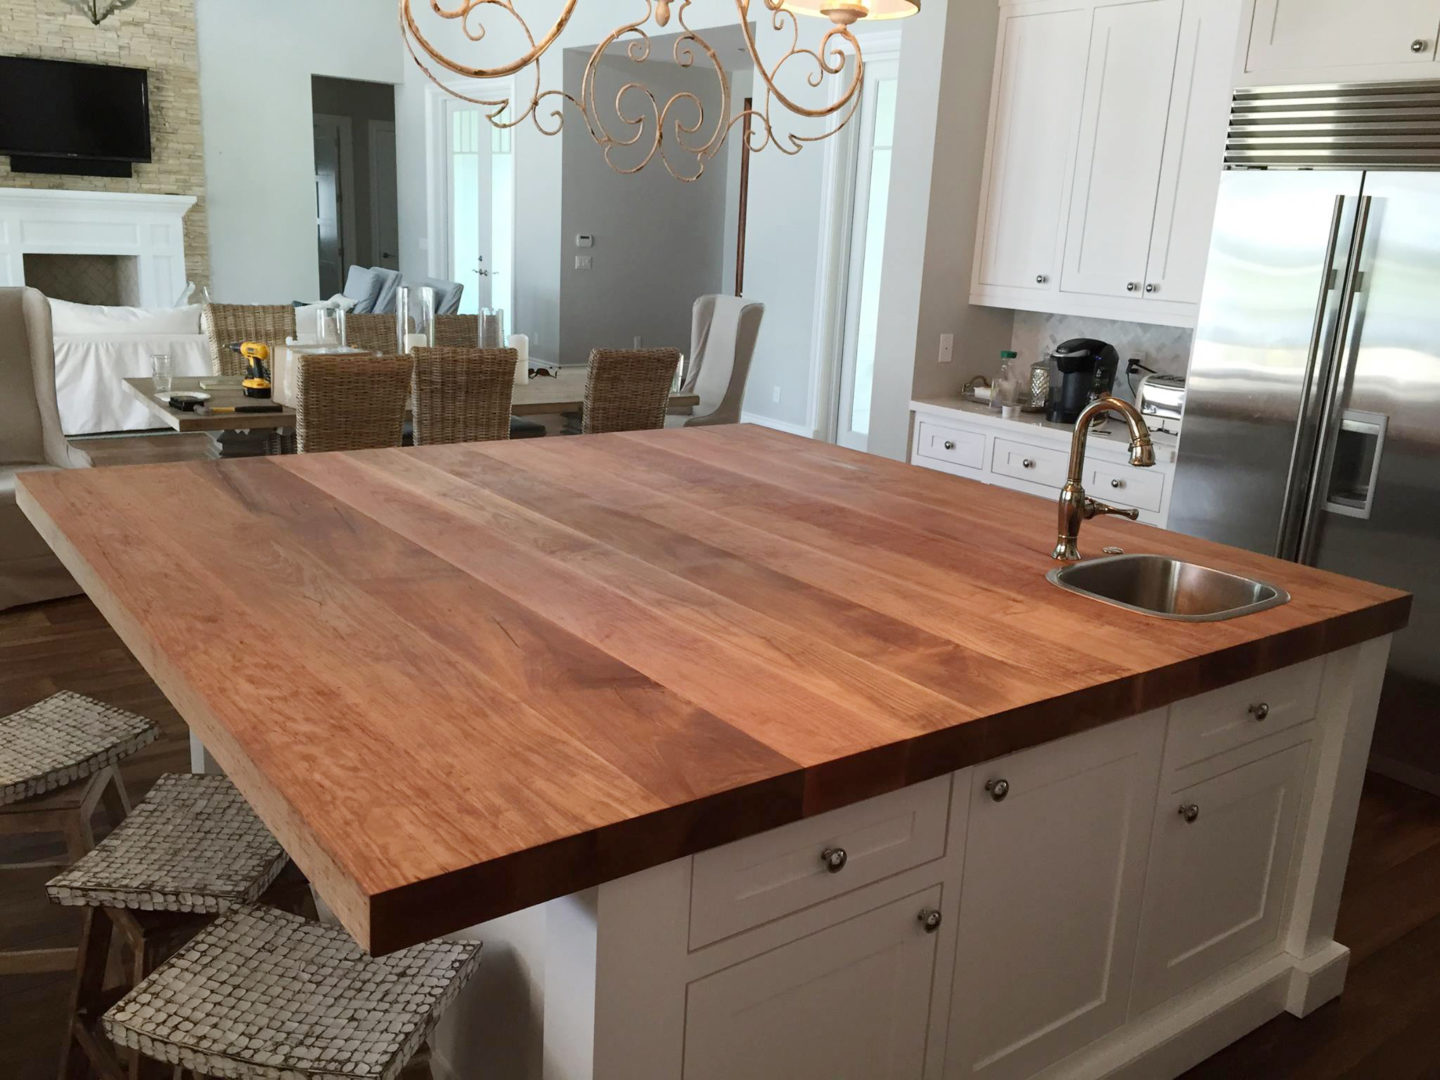 Wooden Countertops by Cabinet Solutions